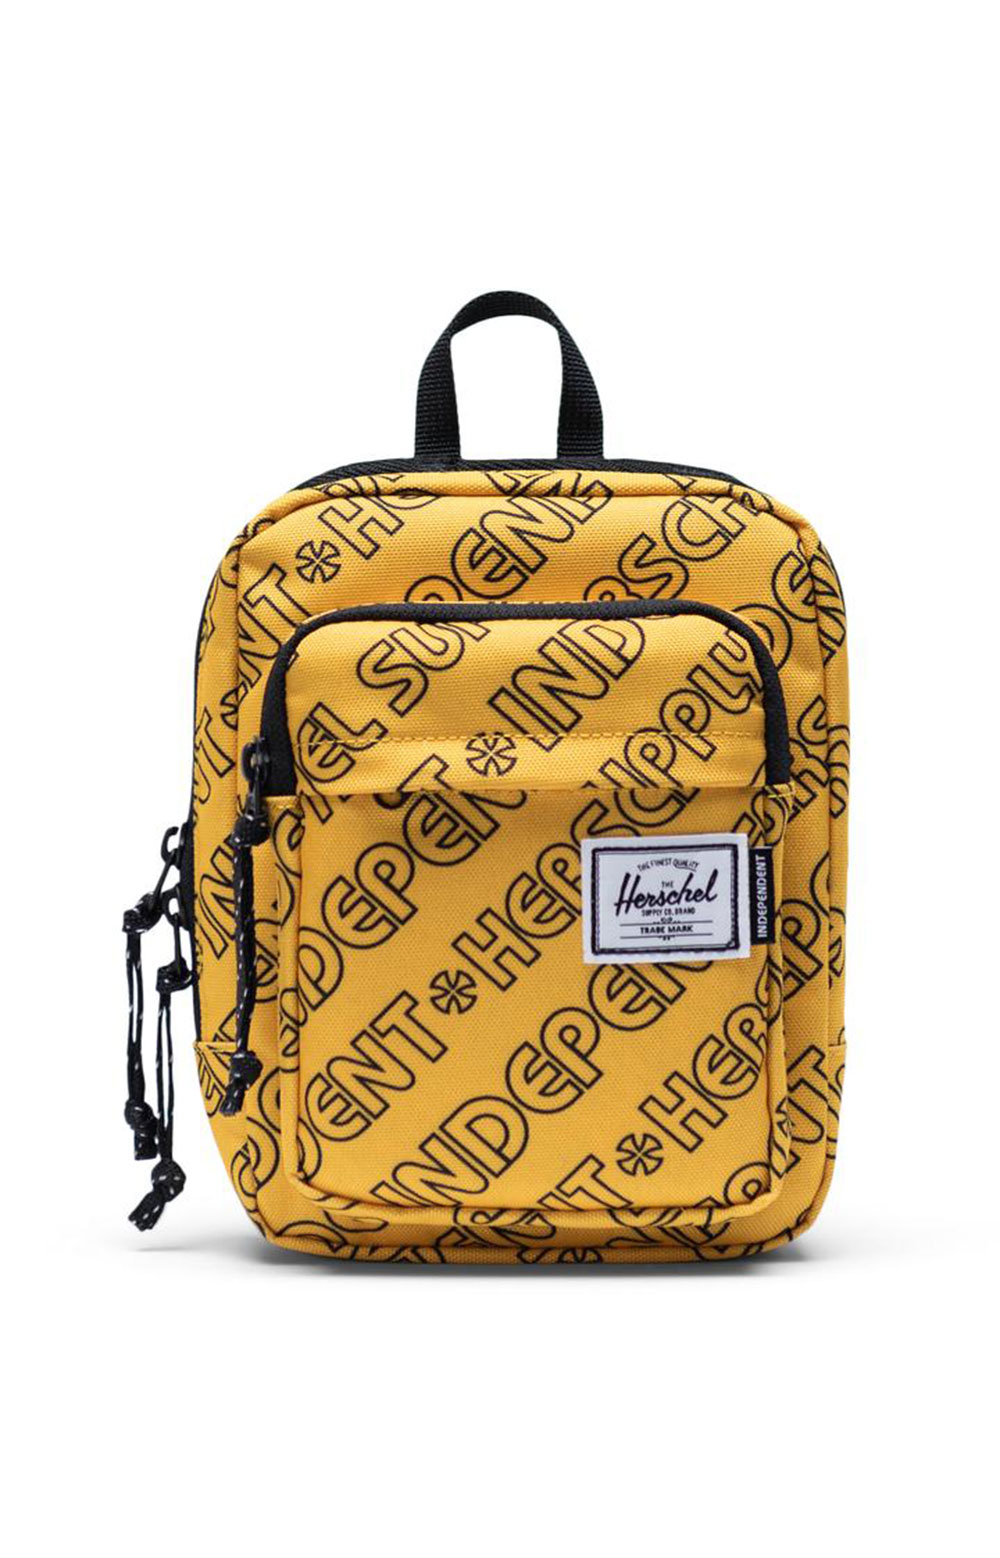 Form L Crossbody Bag - Independent Unified Yellow